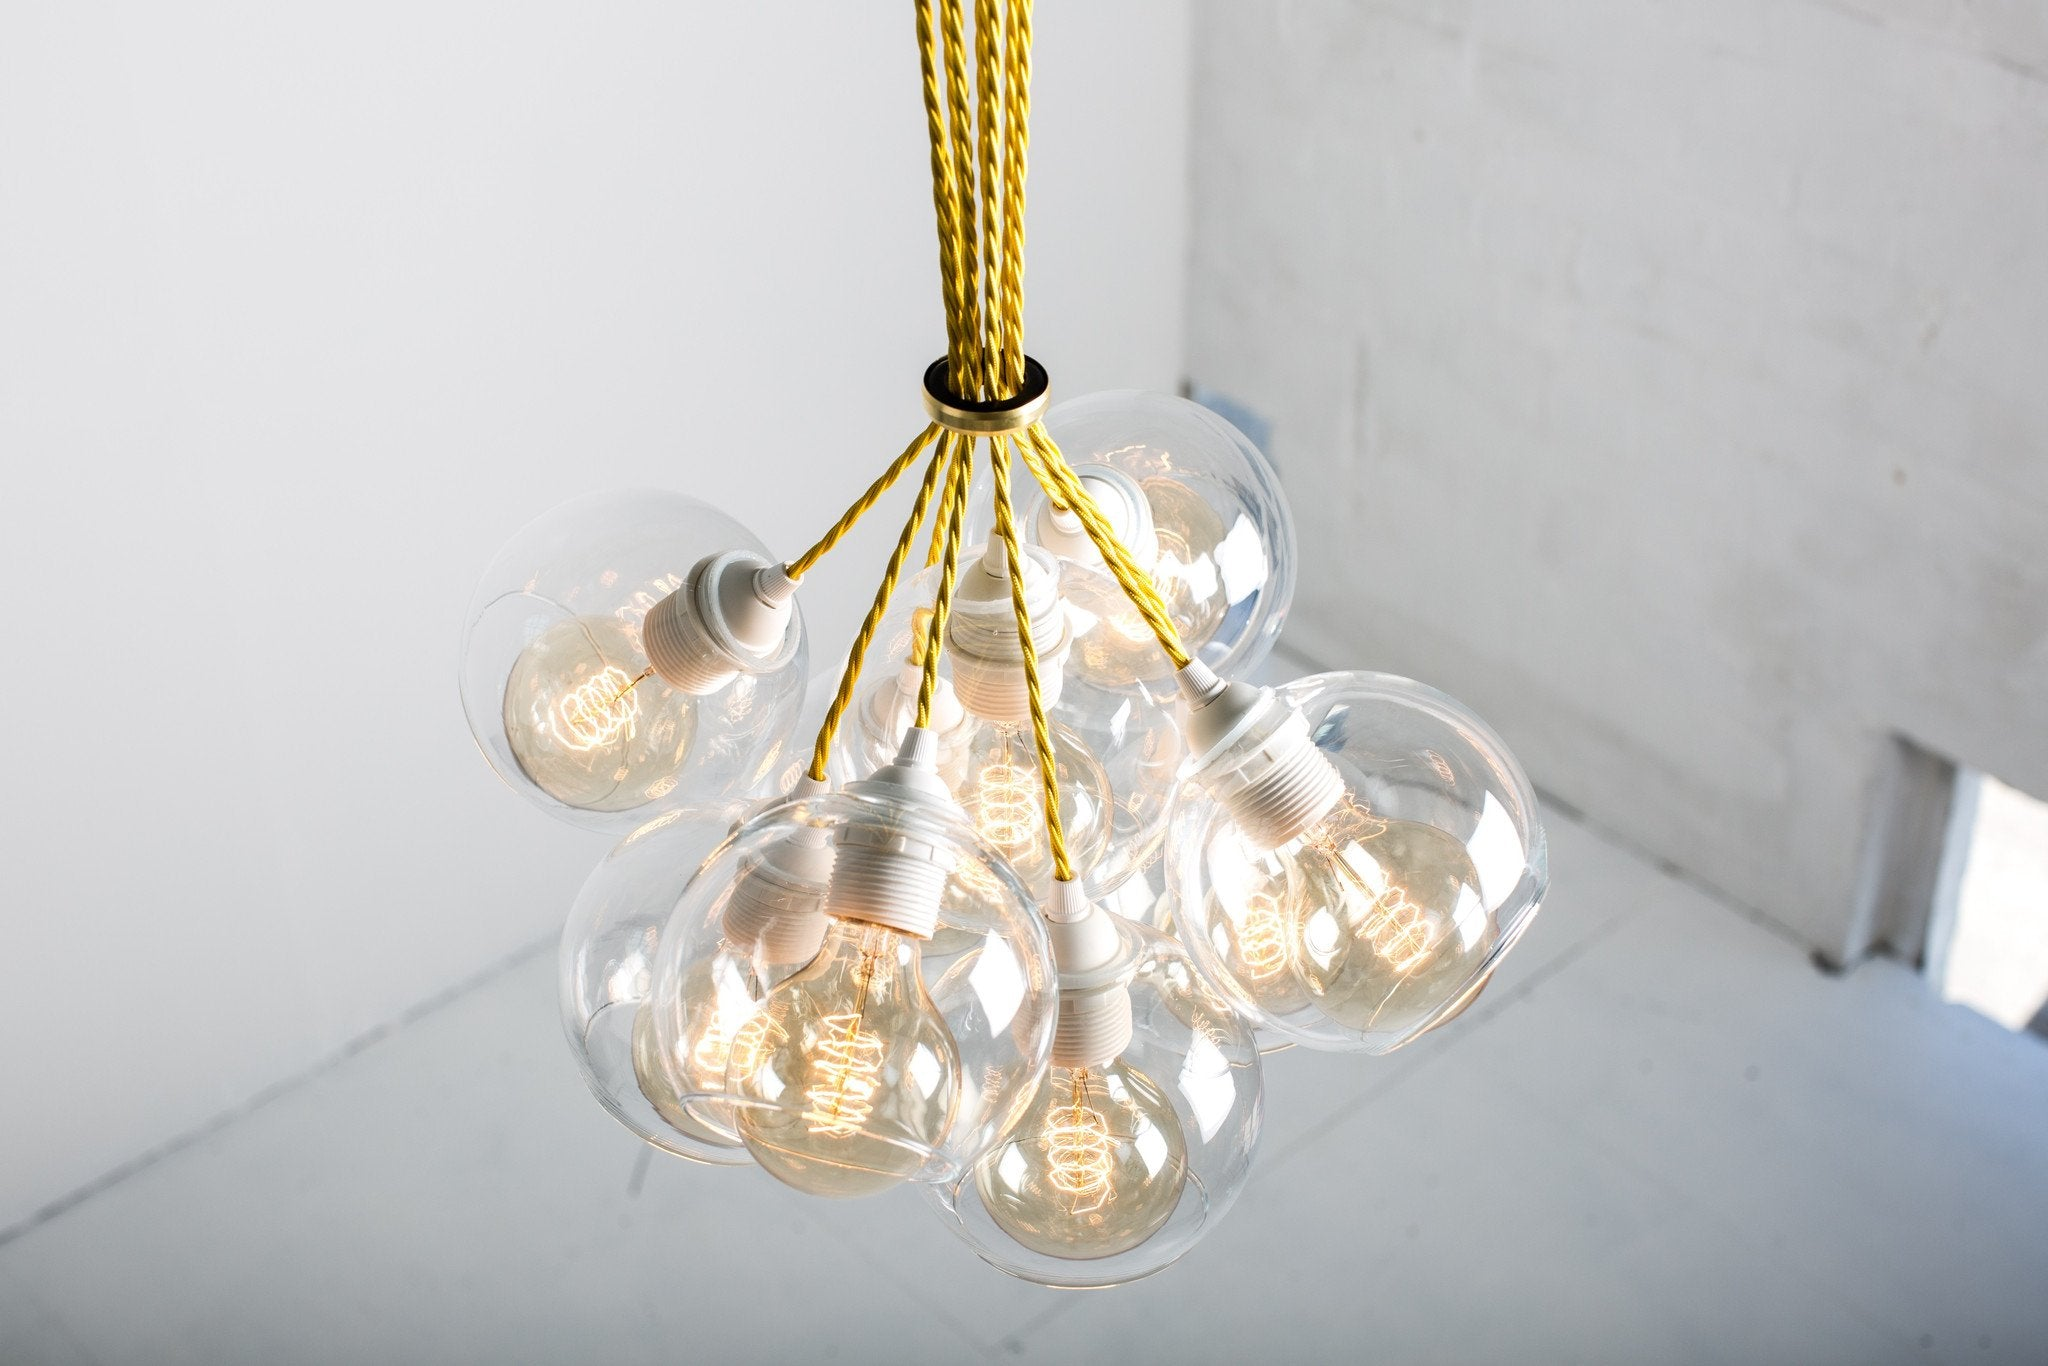 Atom 9 Clear Glass Chandelier Light Kit - Mushroom Designs